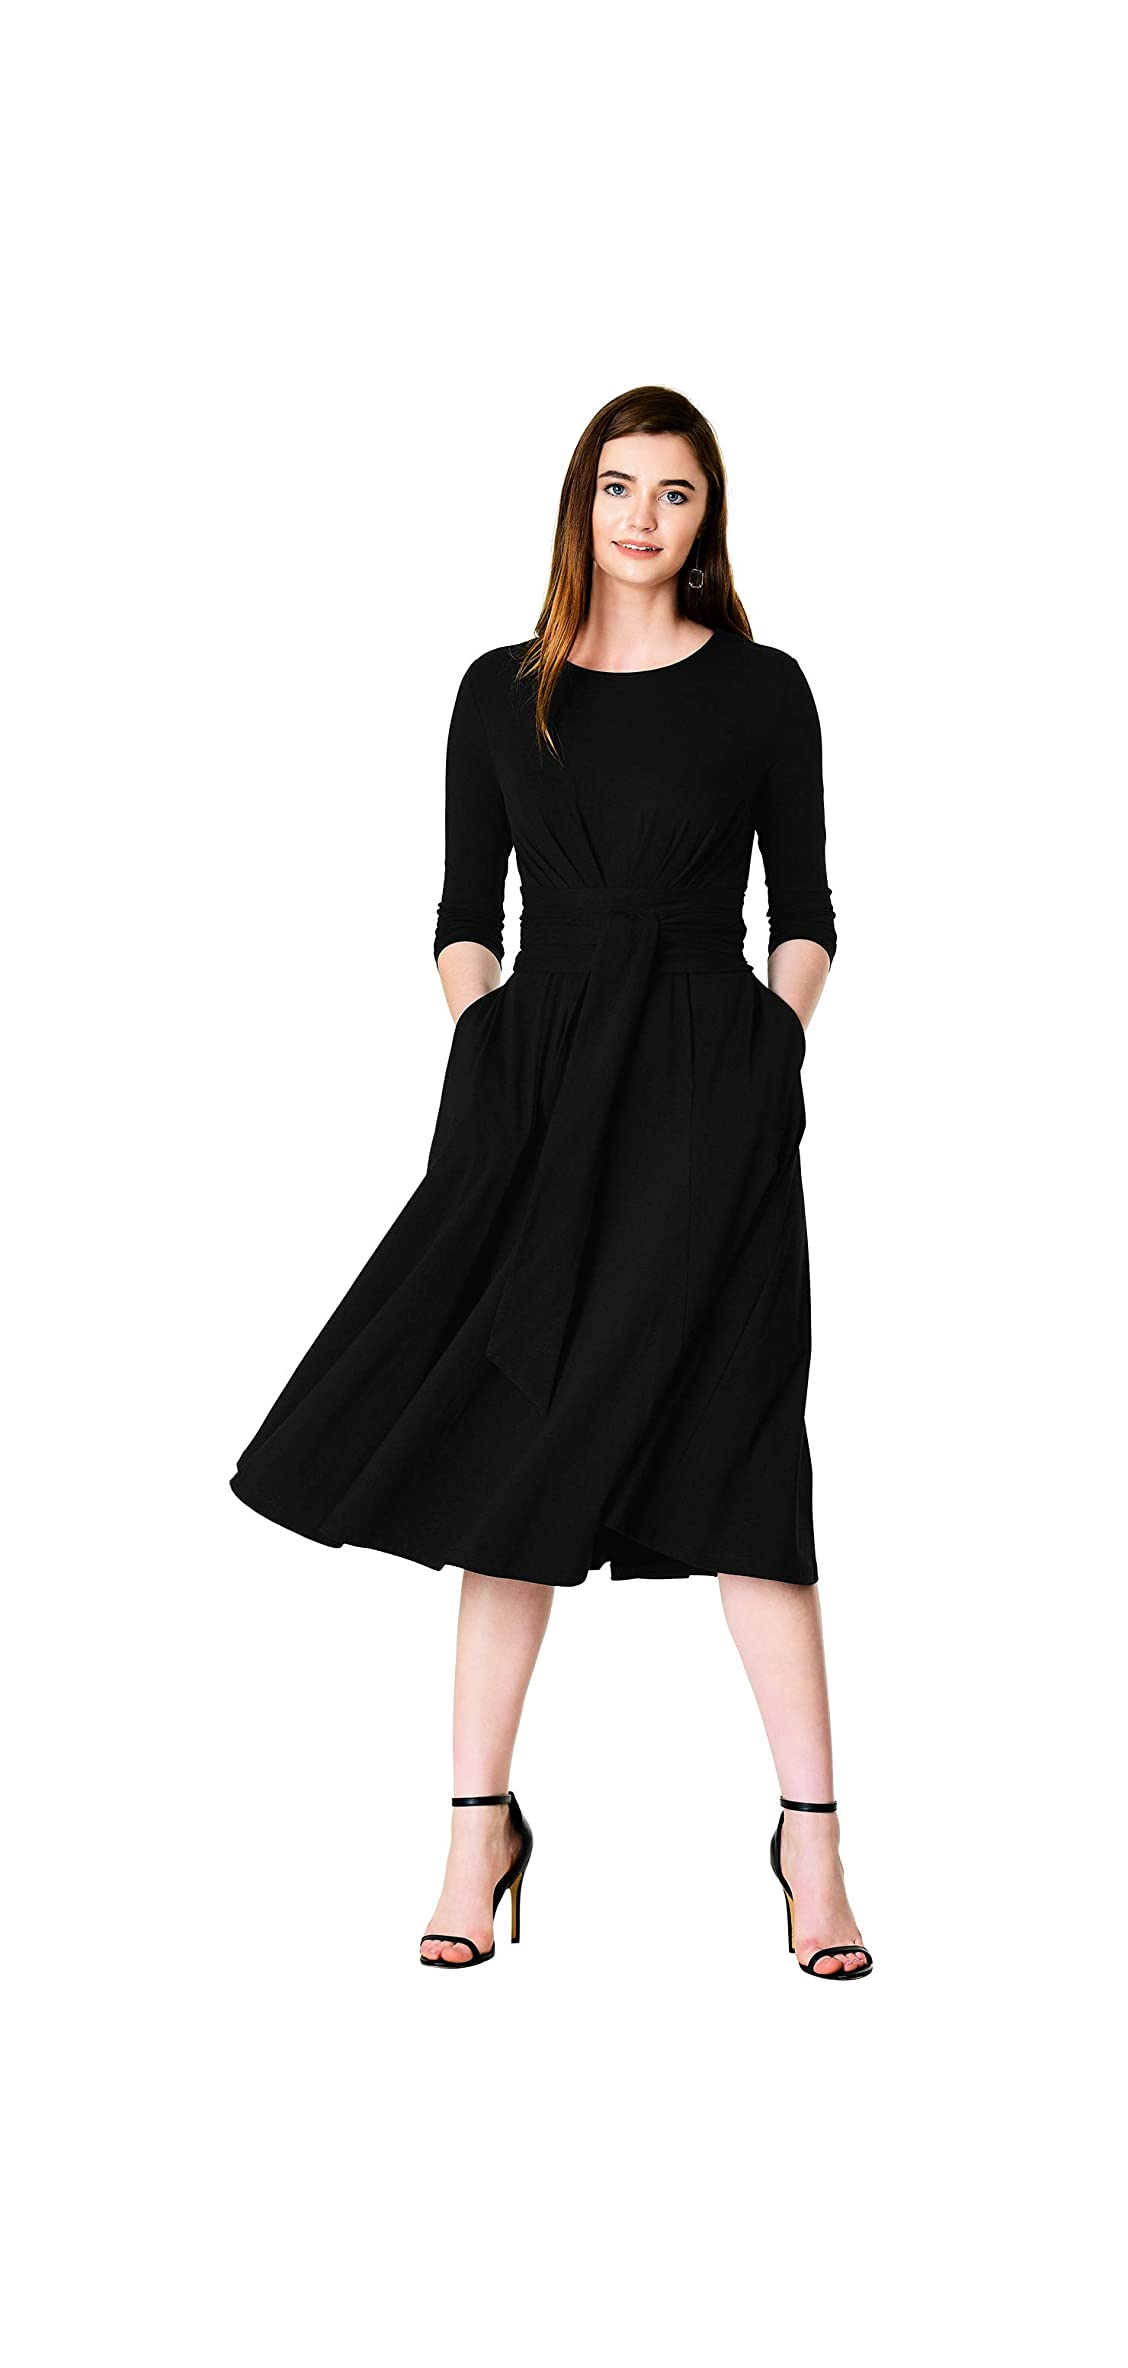 Fx Obi Belt Cotton Jersey Knit Dress Black